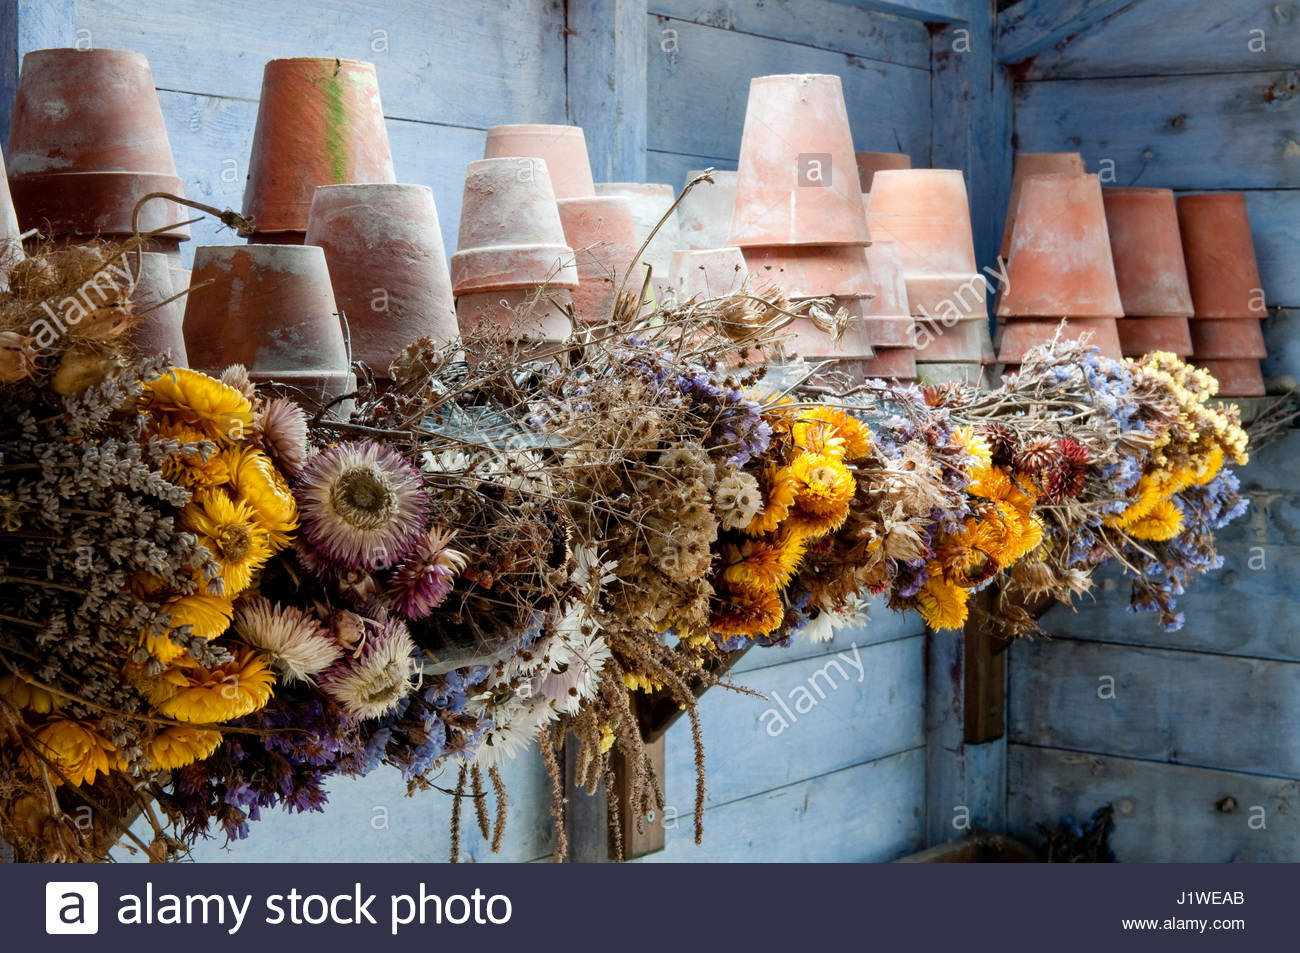 DRYING FLOWERS IN THE POTTING SHED - Stock Image